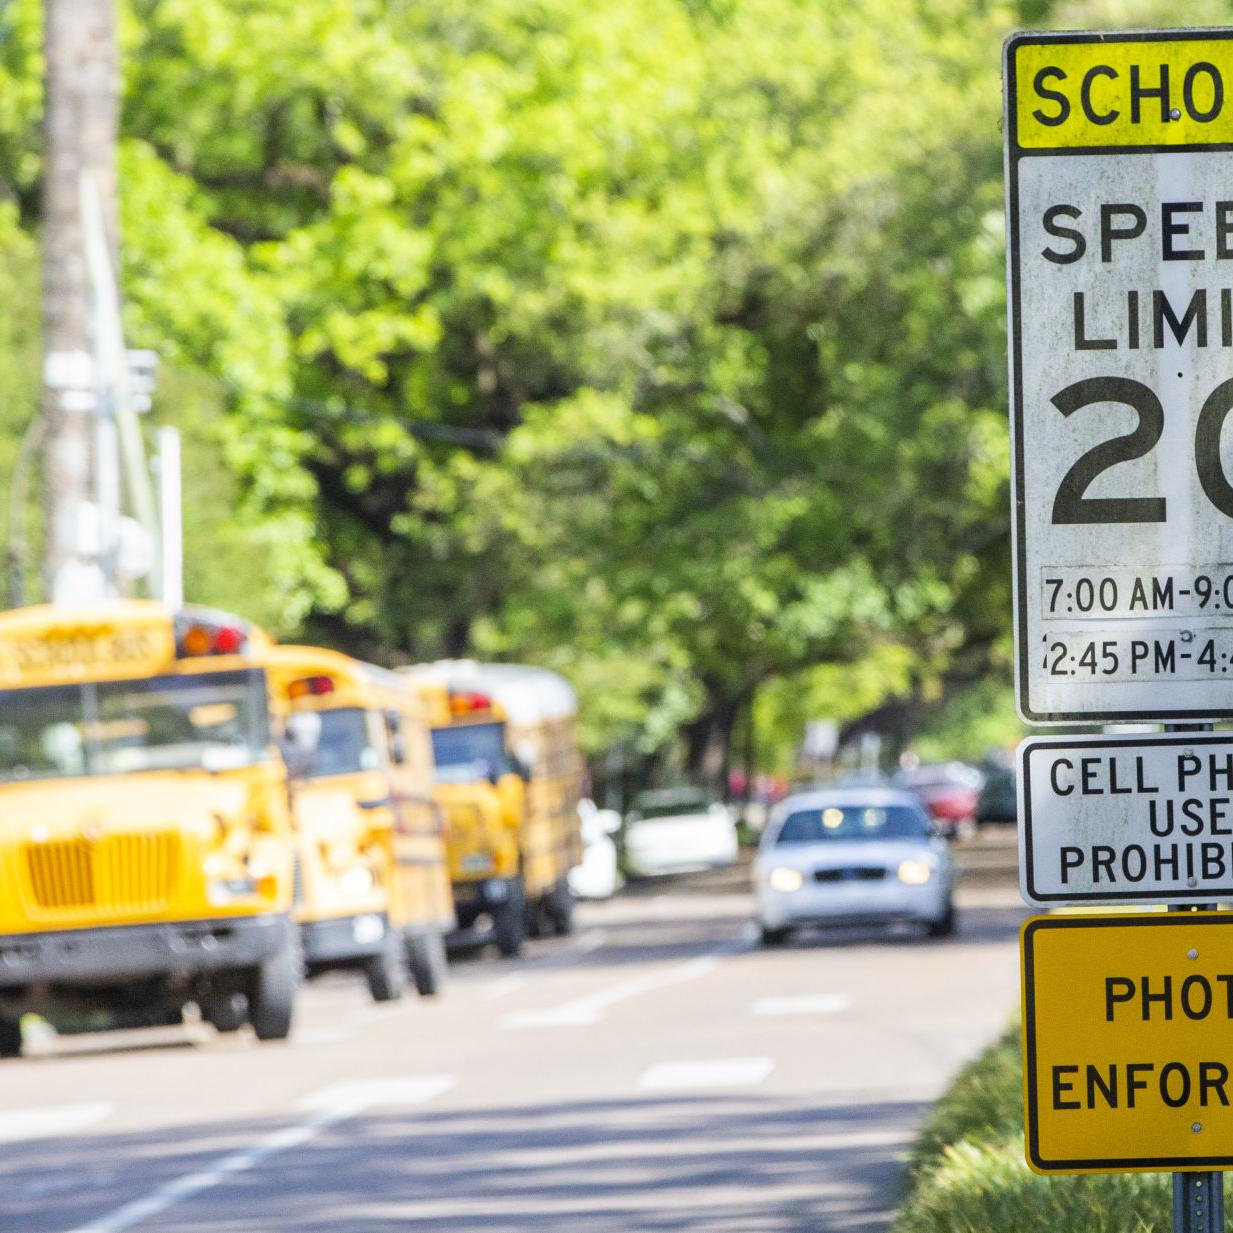 Get ready: New Orleans school zone traffic cams switched on next